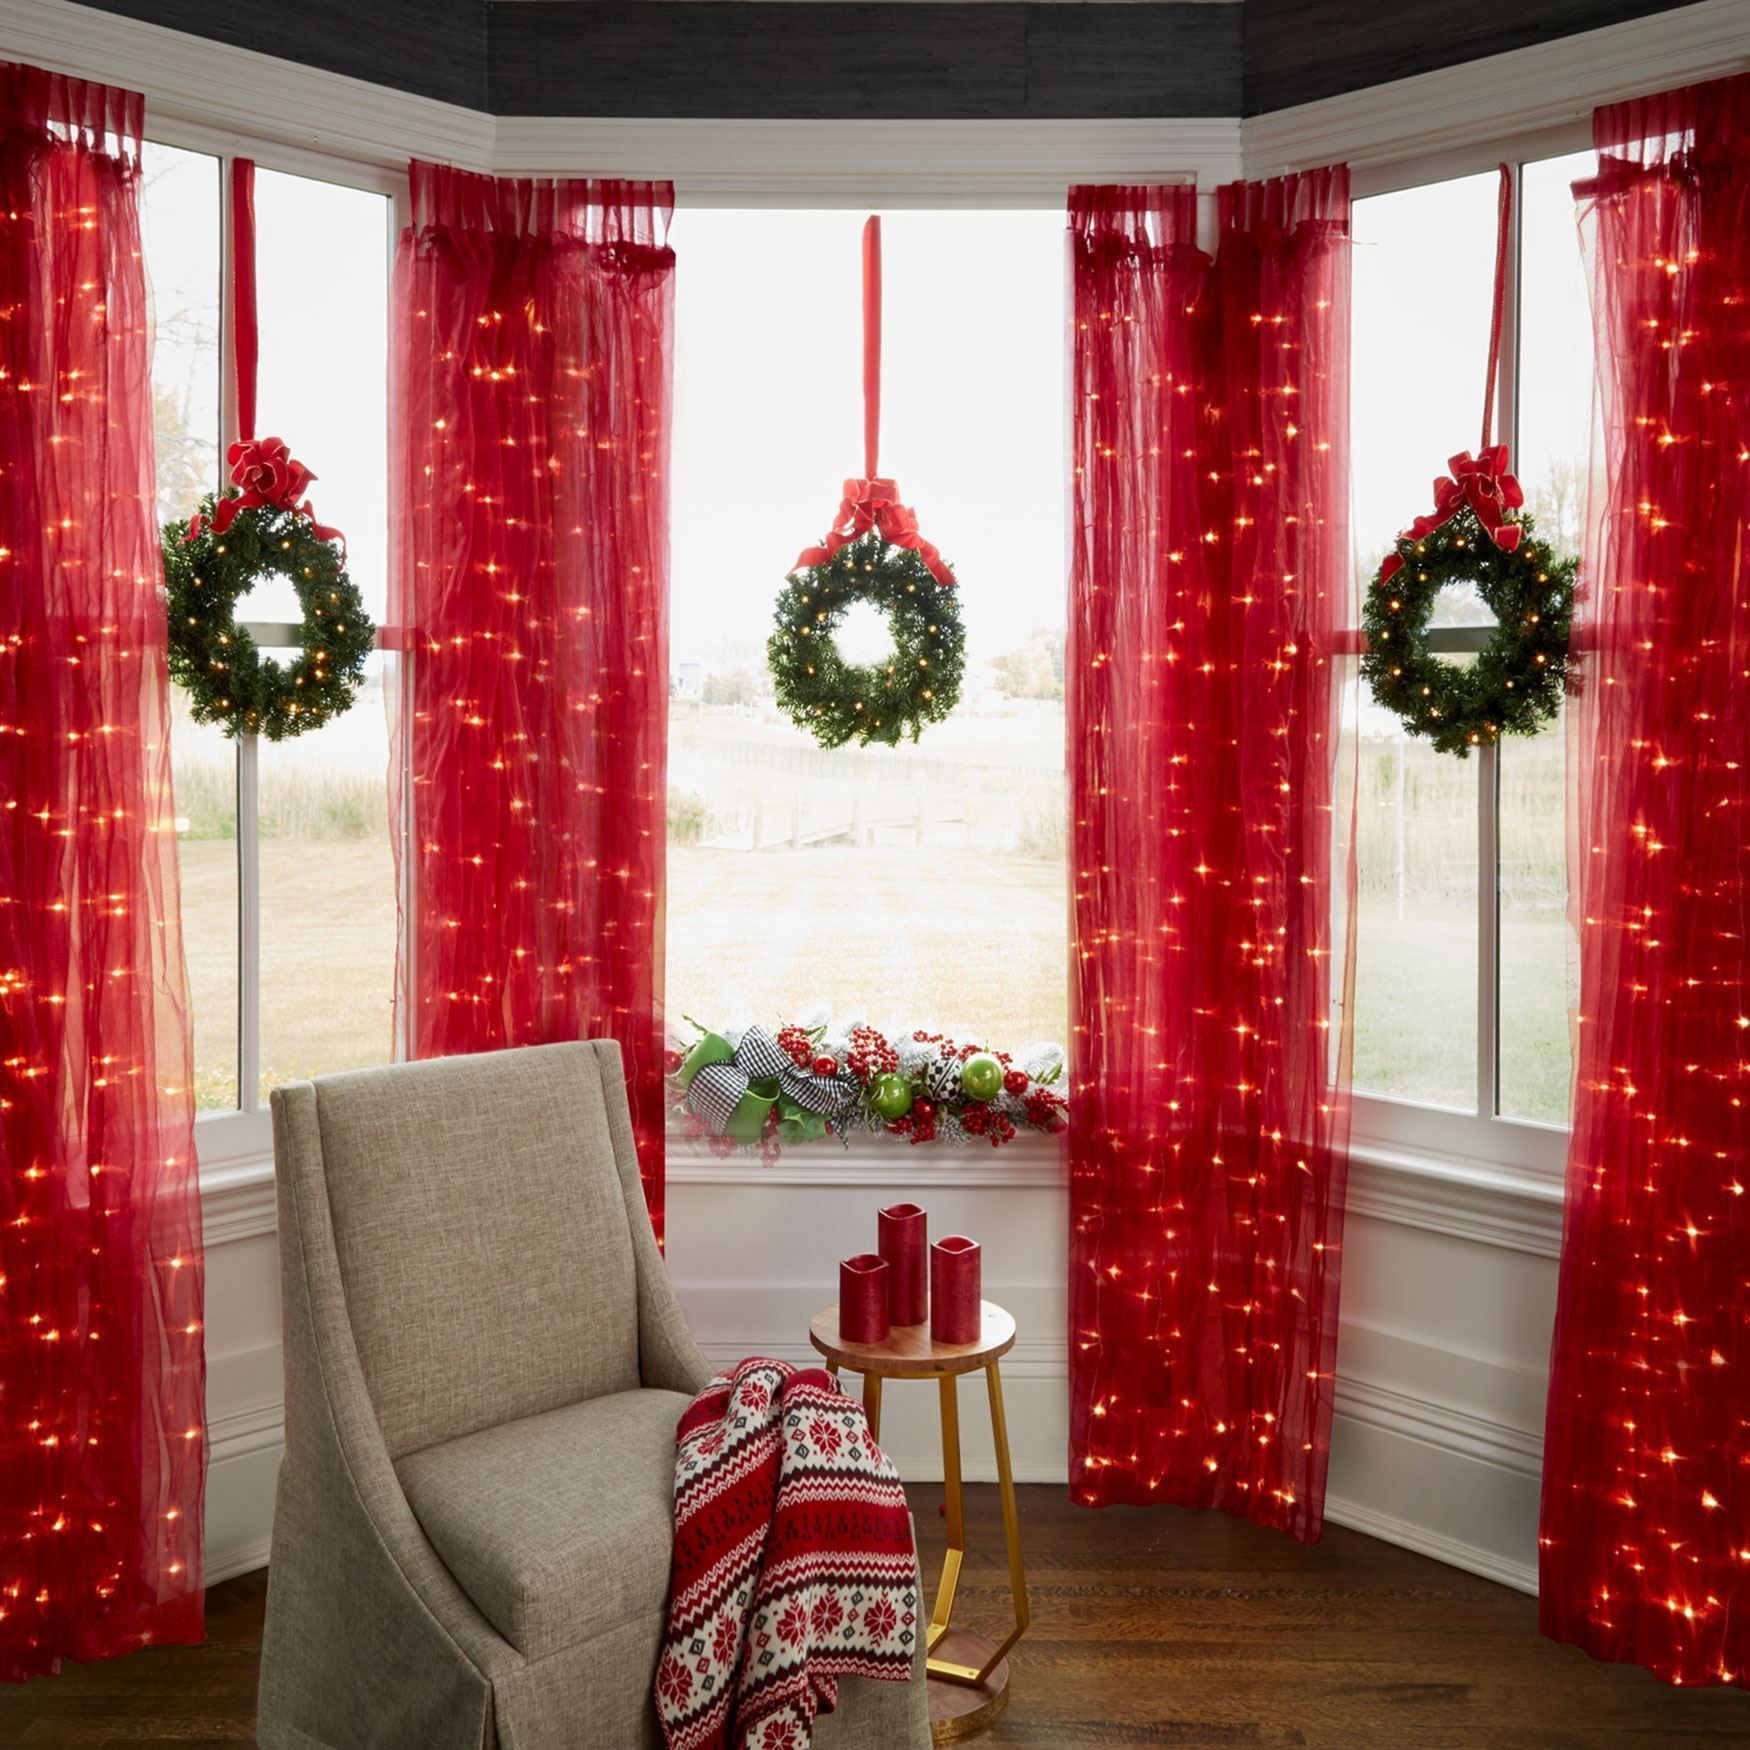 Cool 20 Diy Decorating Ideas For Your Best Christmas With Family Https Usdecoratin Christmas Window Decorations Indoor Christmas Decorations Indoor Christmas